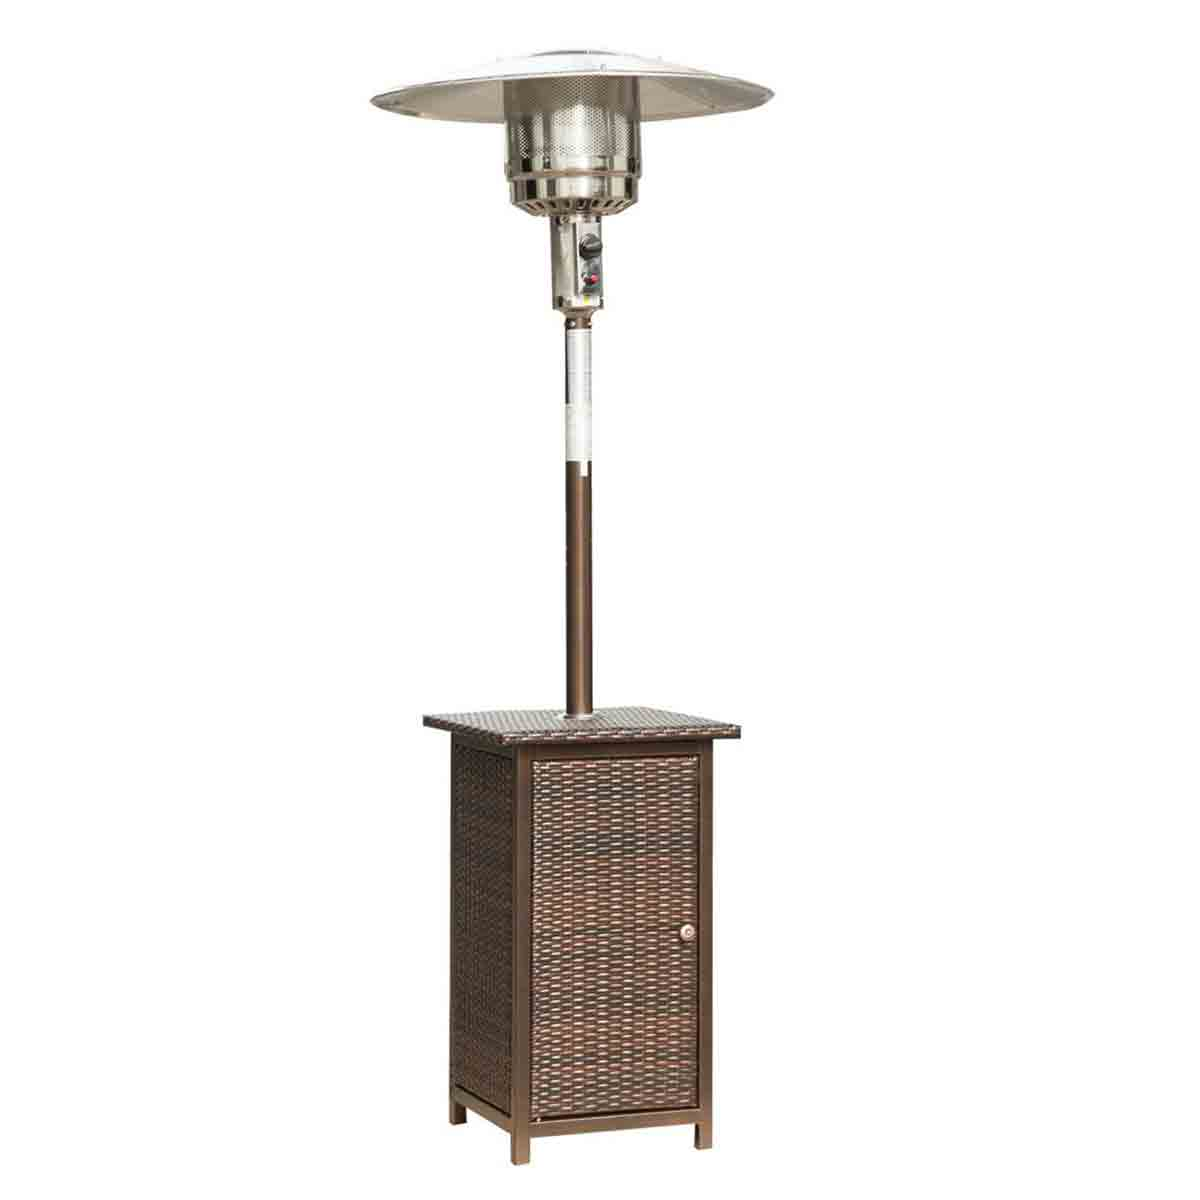 Outsunny Rattan 12kw Gas Patio Heater